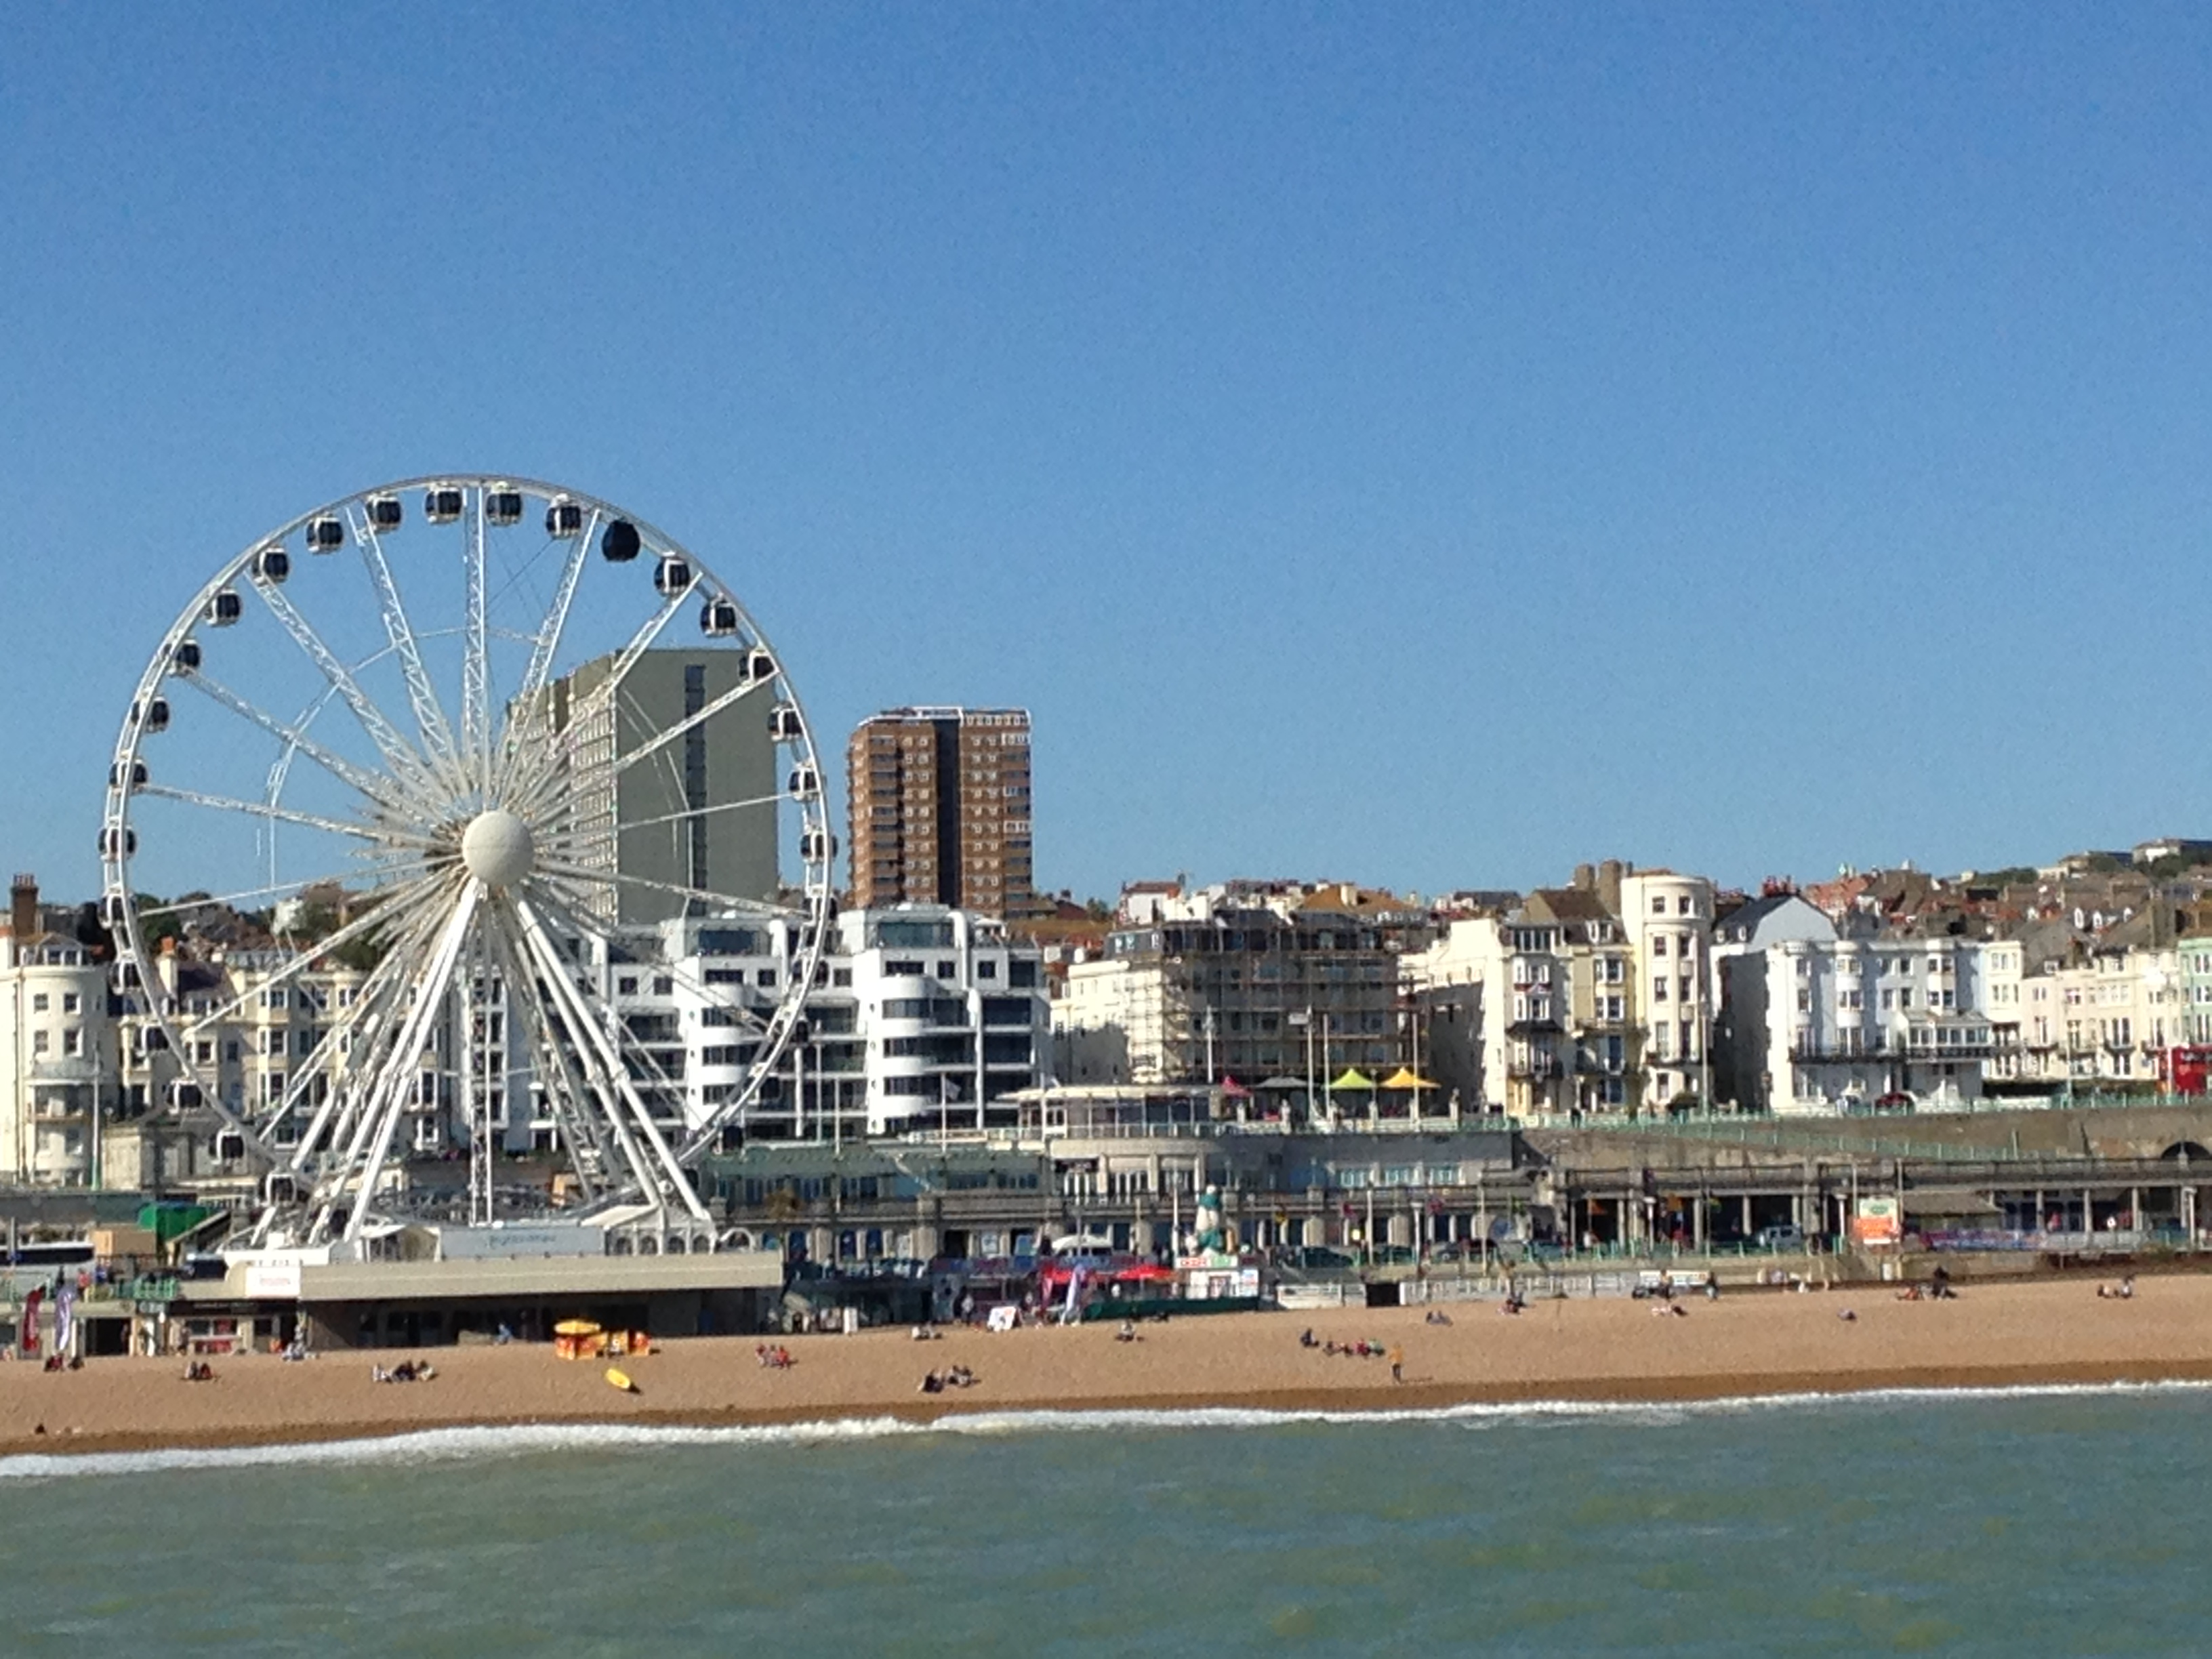 All Sunshine in Brighton, England today!